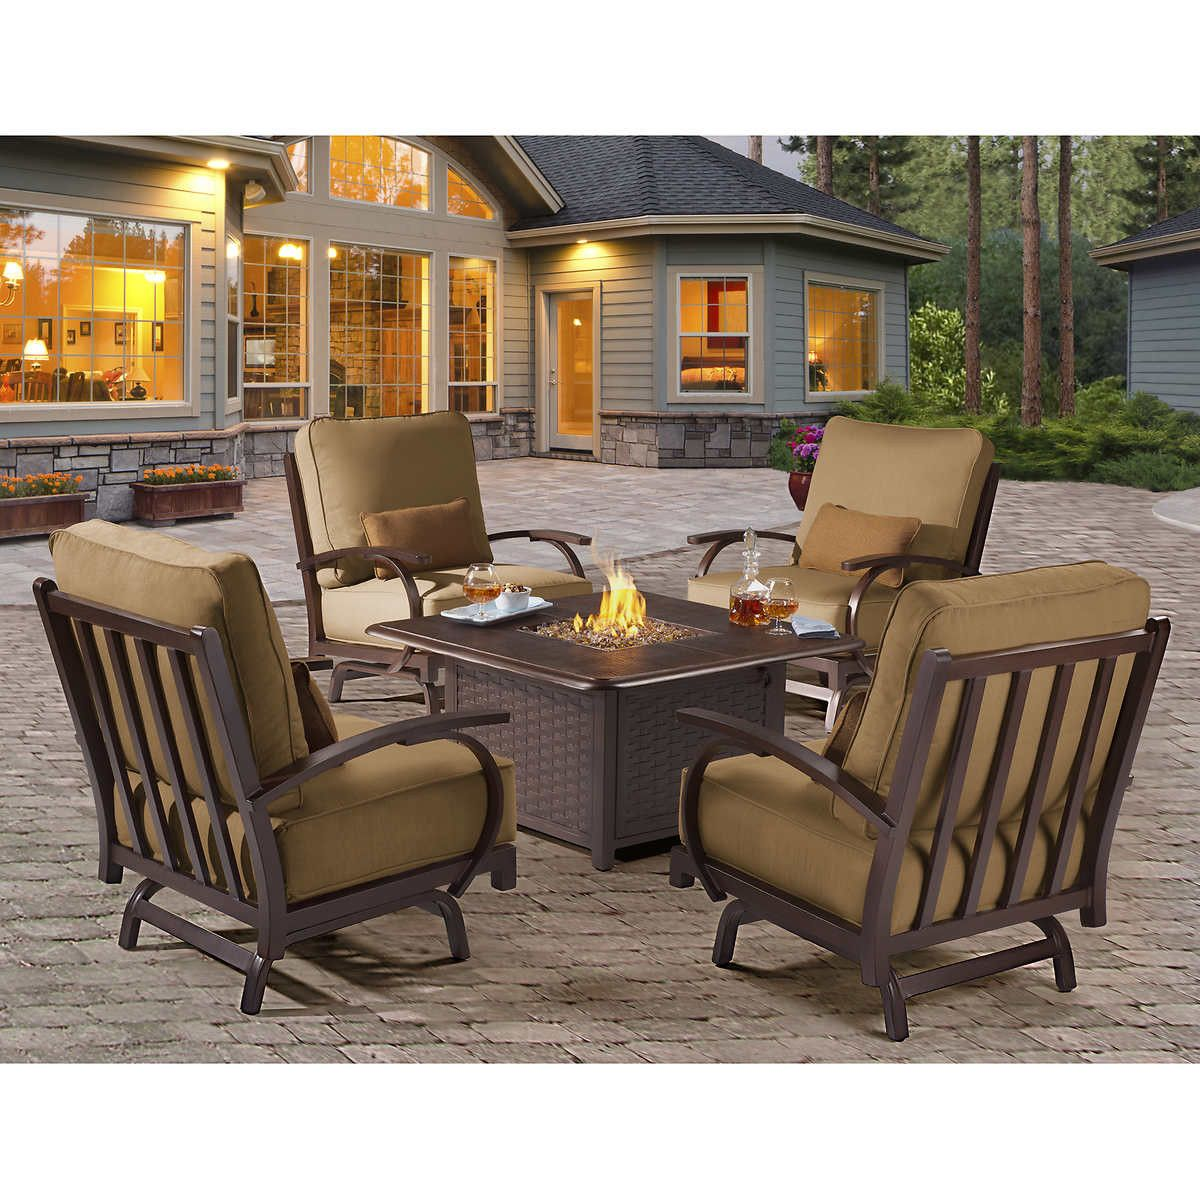 Fire Pit Table And Chairs Costco Home Office Furniture Sets Check More At Http